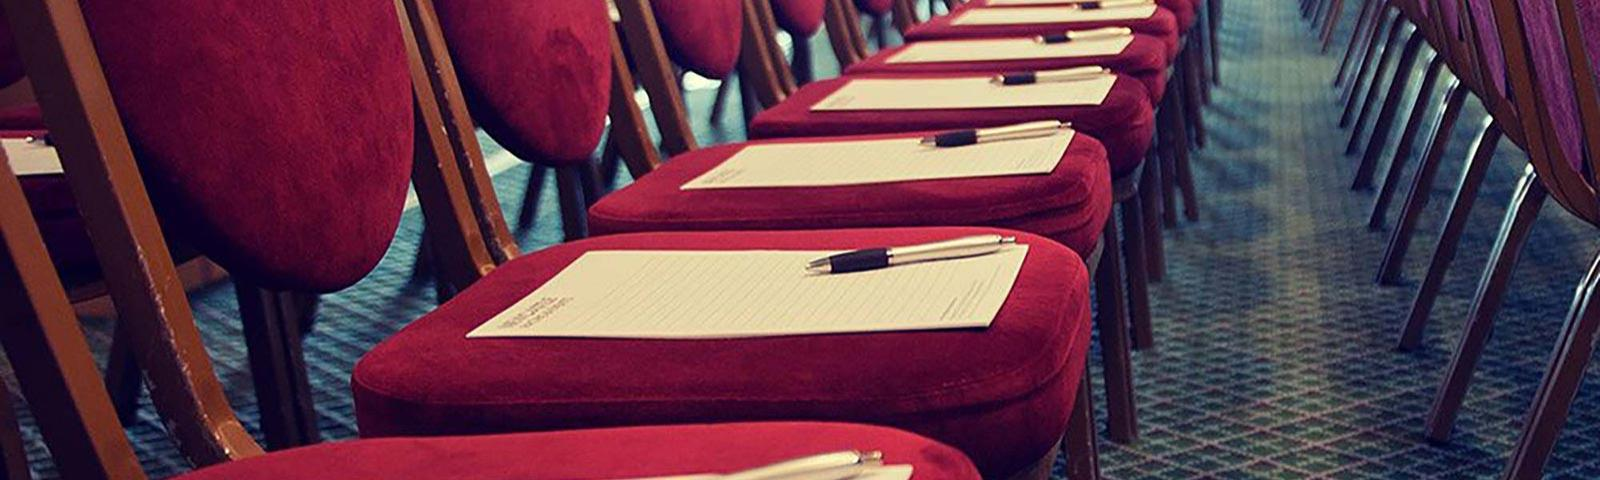 Rows of red chairs, each with a pen and notepad resting on the seat.